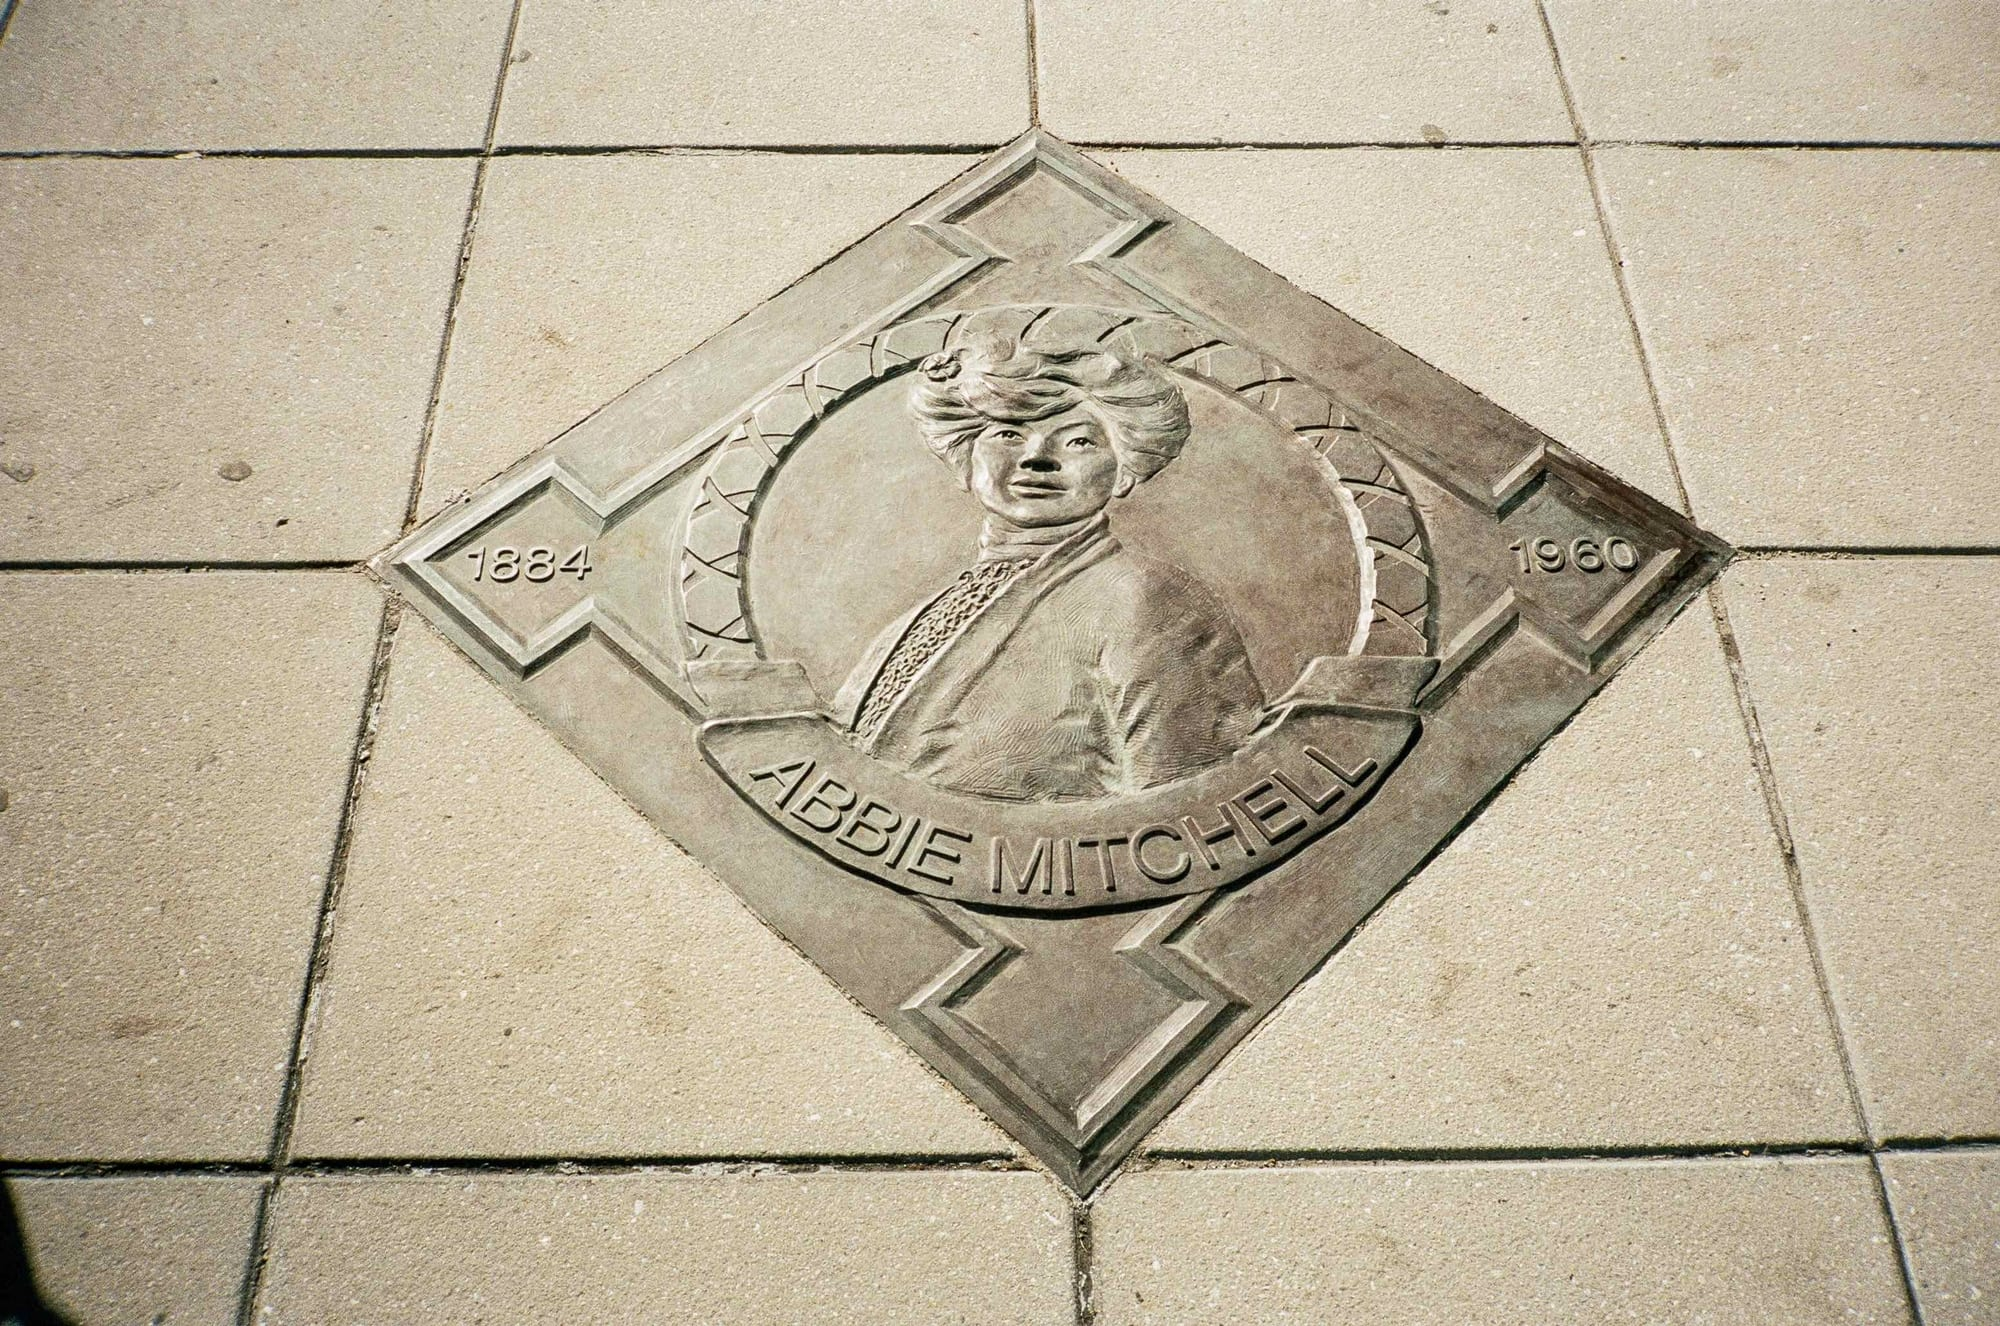 Howard Theatre Walk of Fame medallion in sidewalk, showing bas relief image of Abbie Mitchell in bronze.